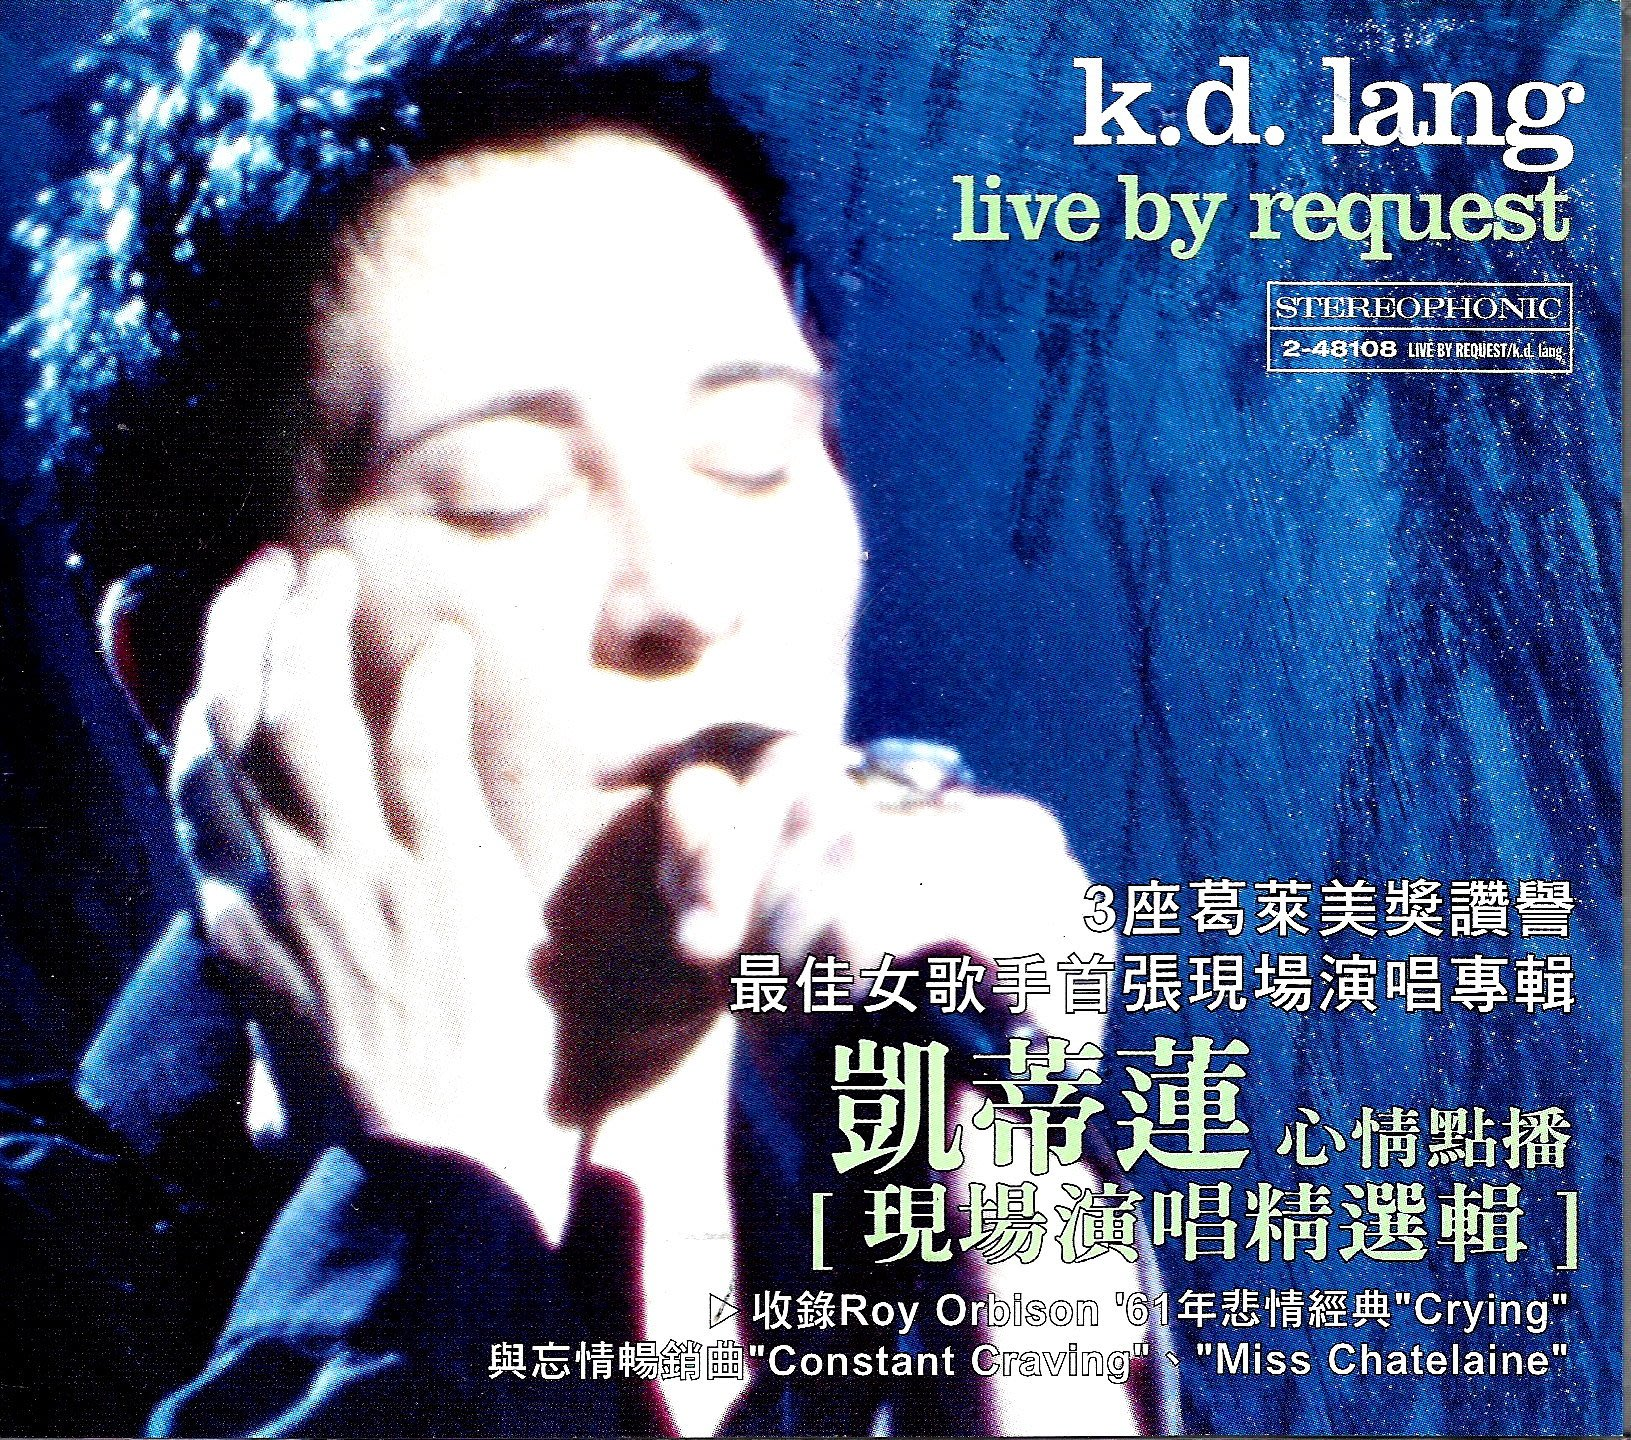 凱蒂蓮K.D. Lang / Live By The Request(有宣傳鋼印)